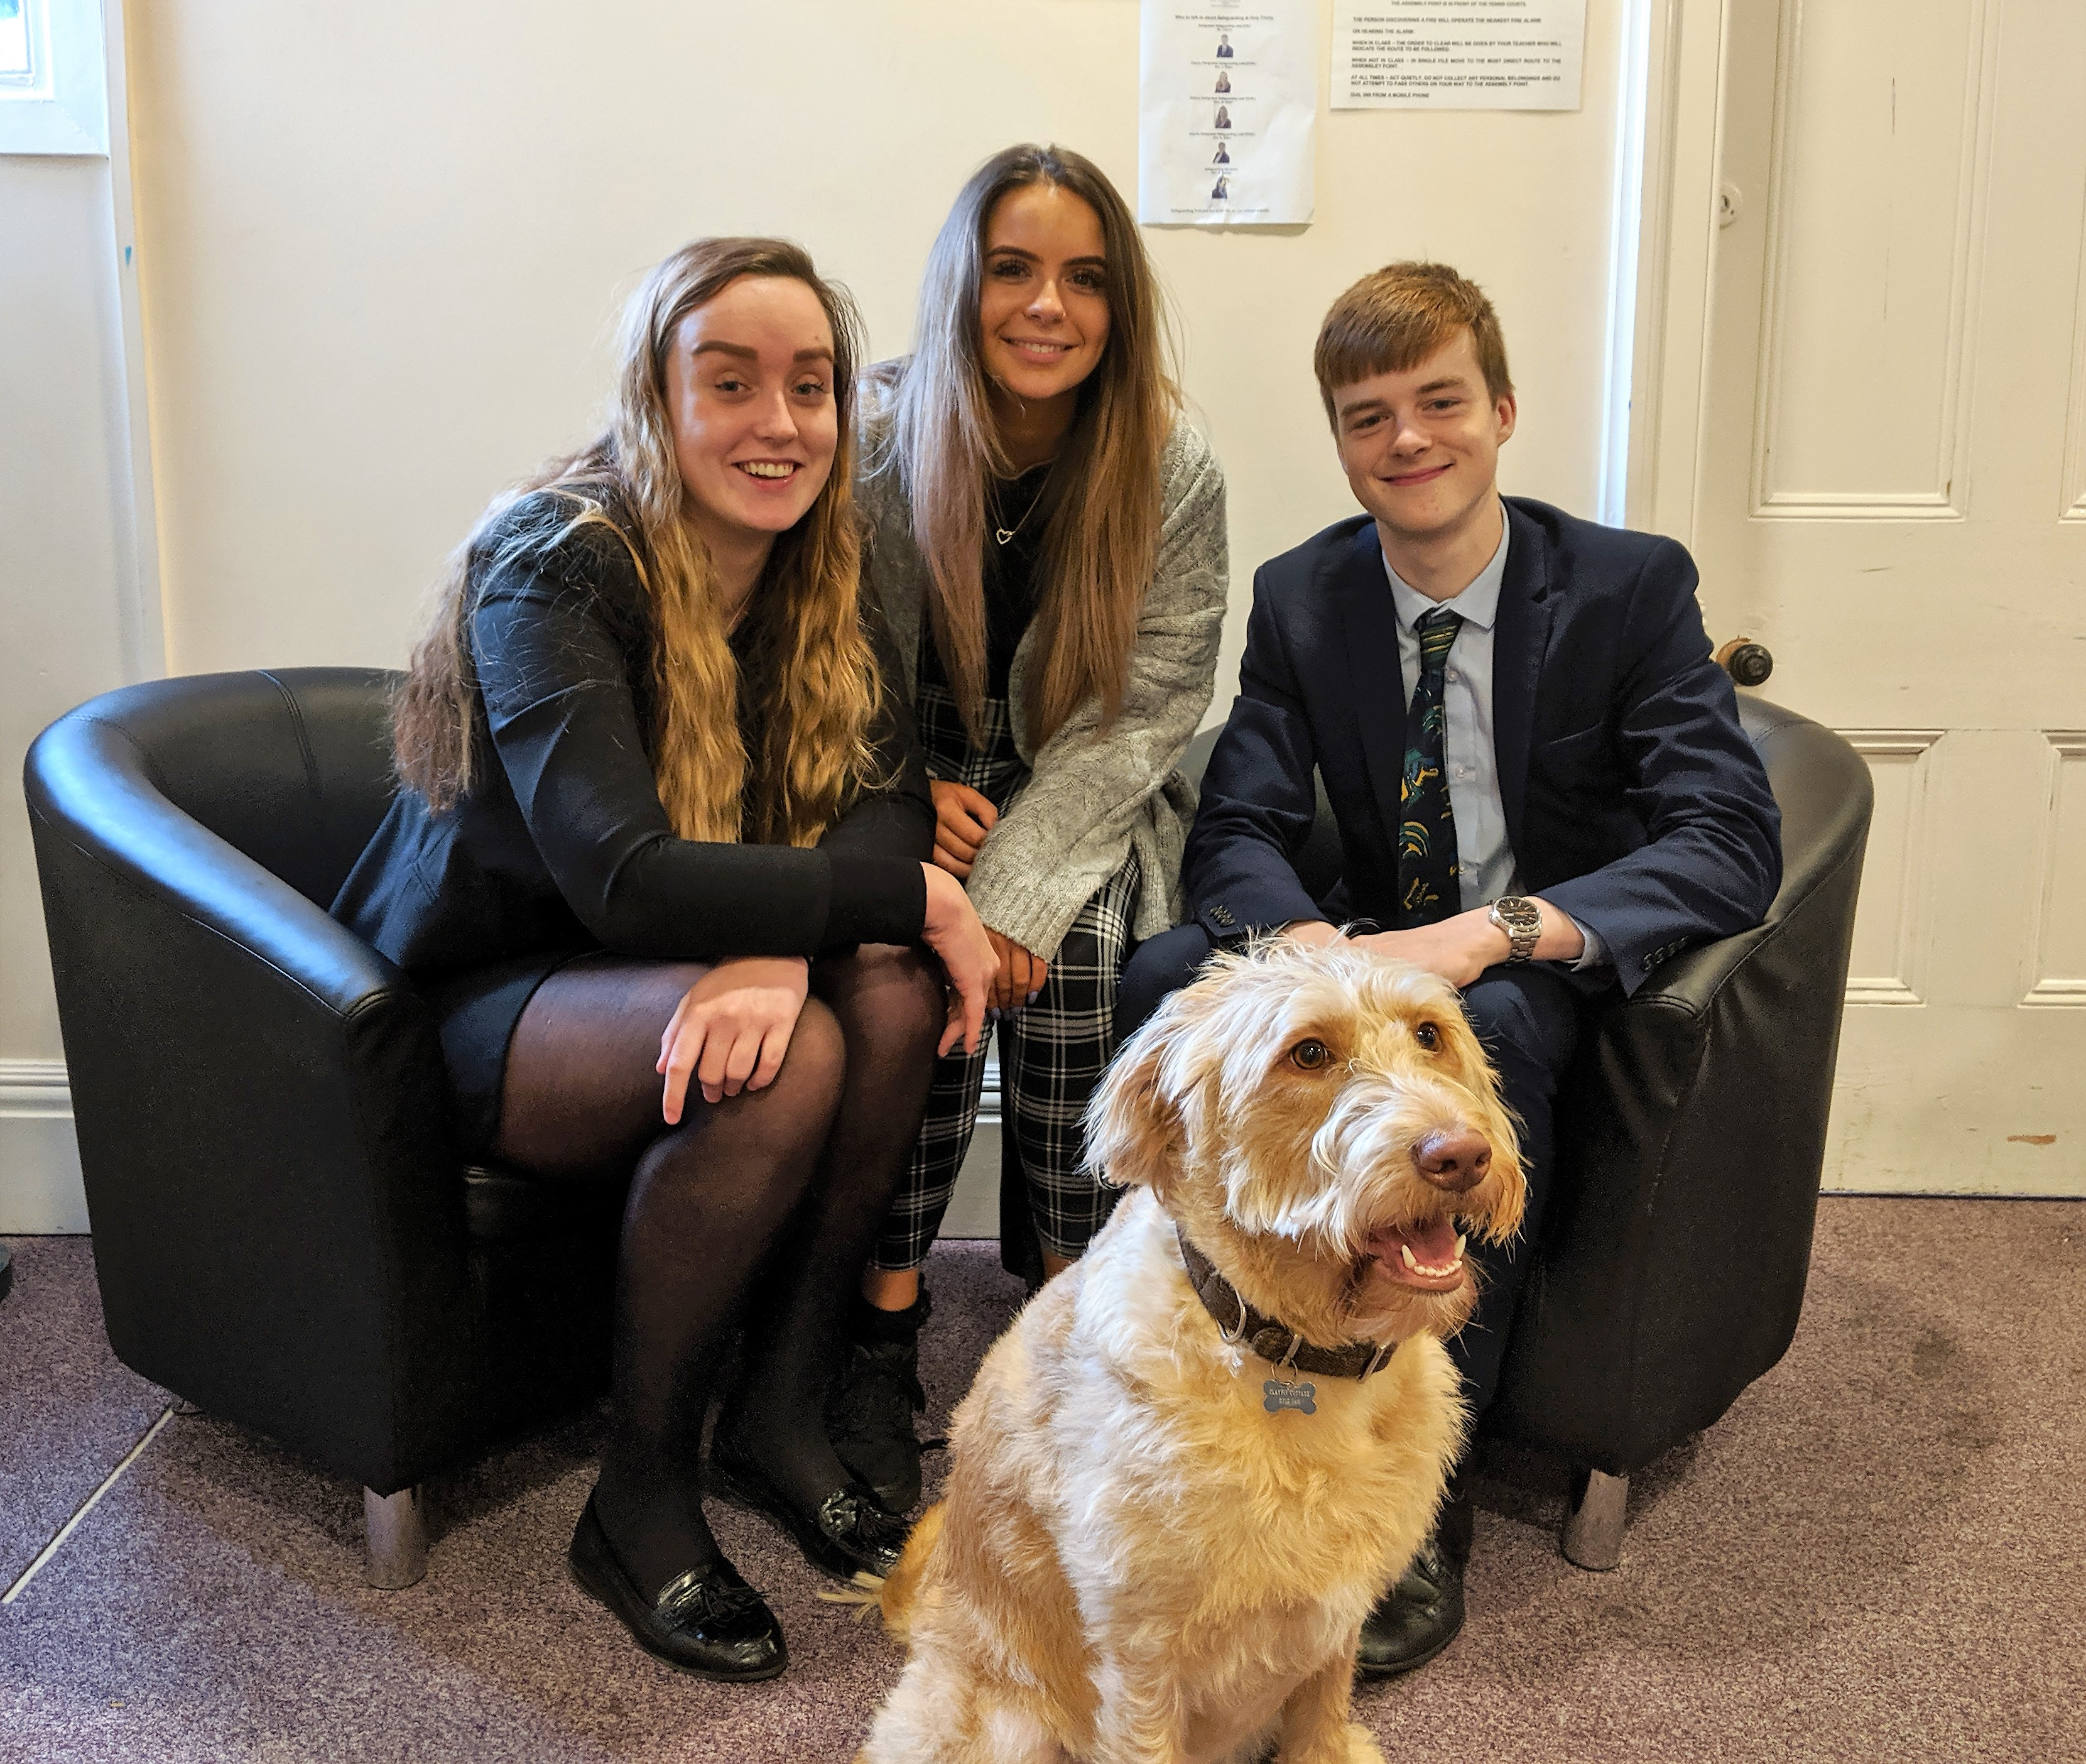 School Dog the Face of Kidderminster School Governor Campaign